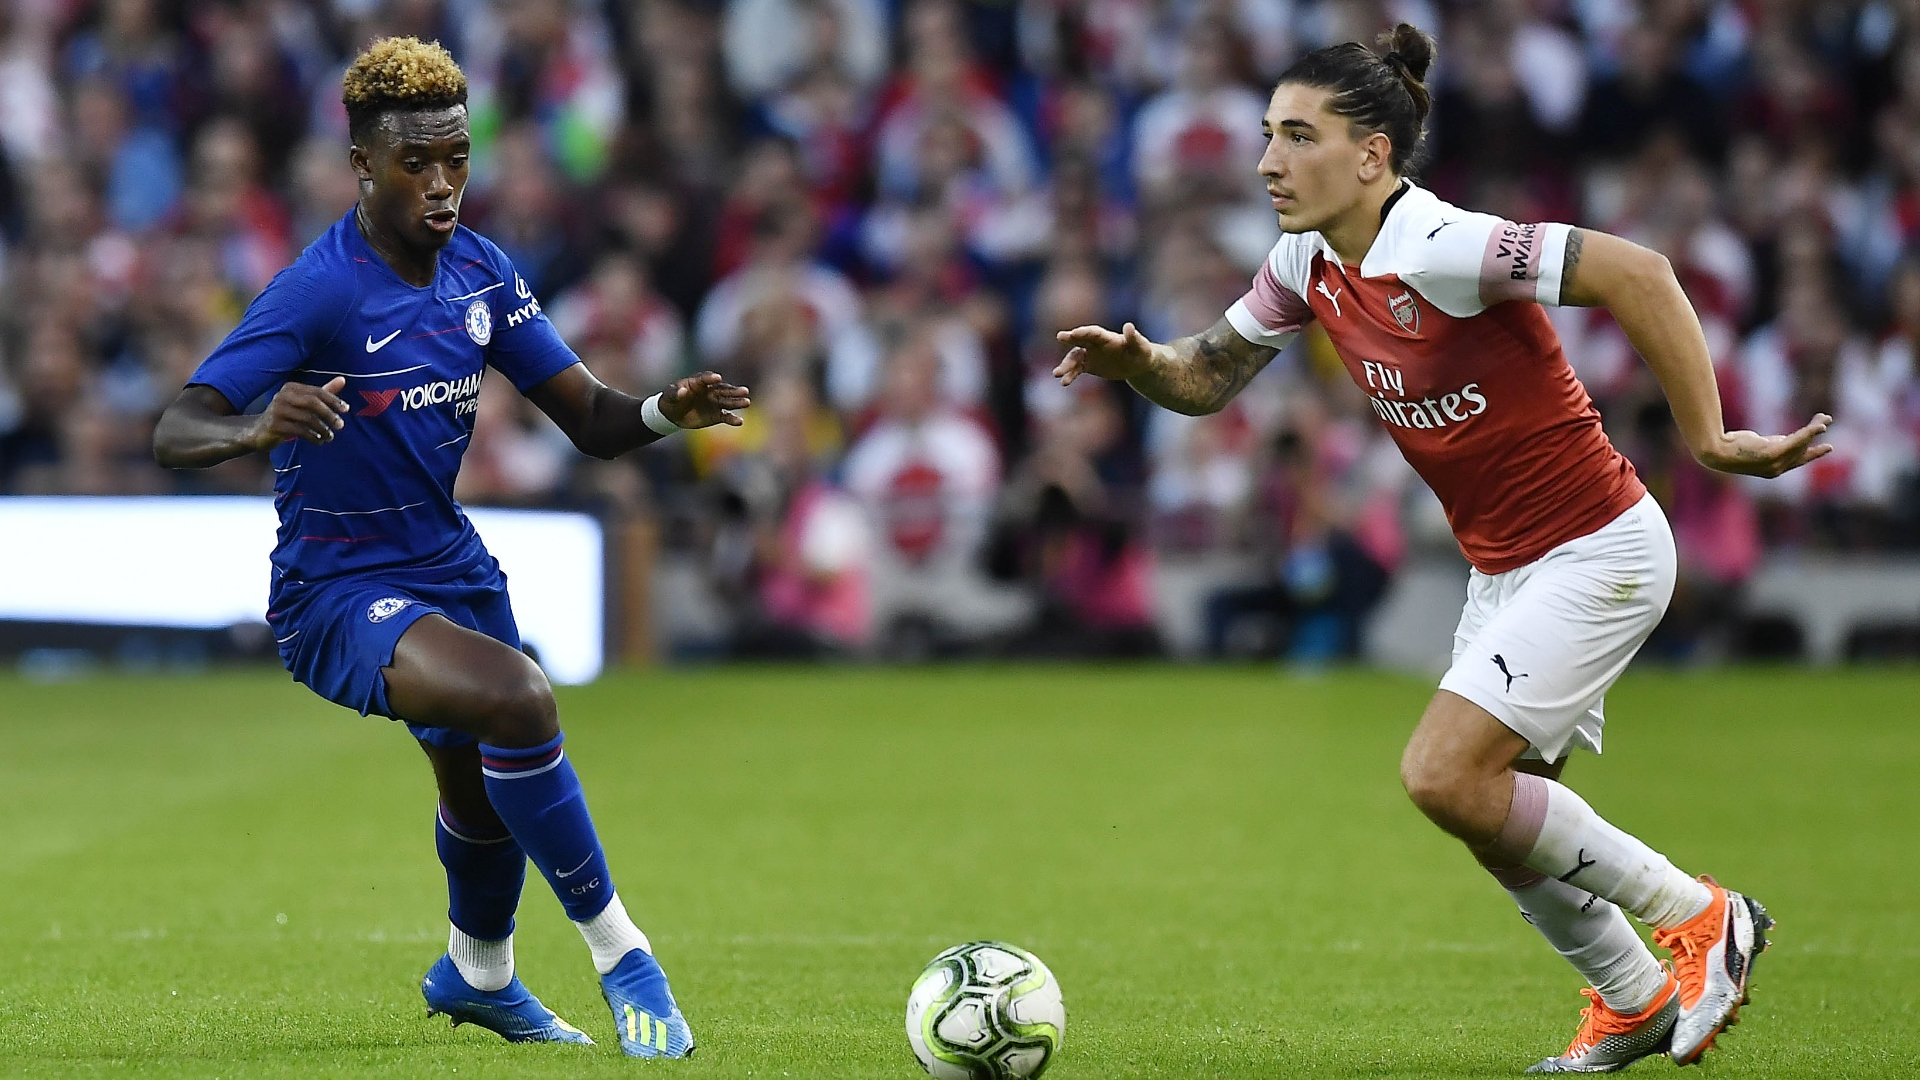 Arsenal vs. Chelsea - Football Match Report